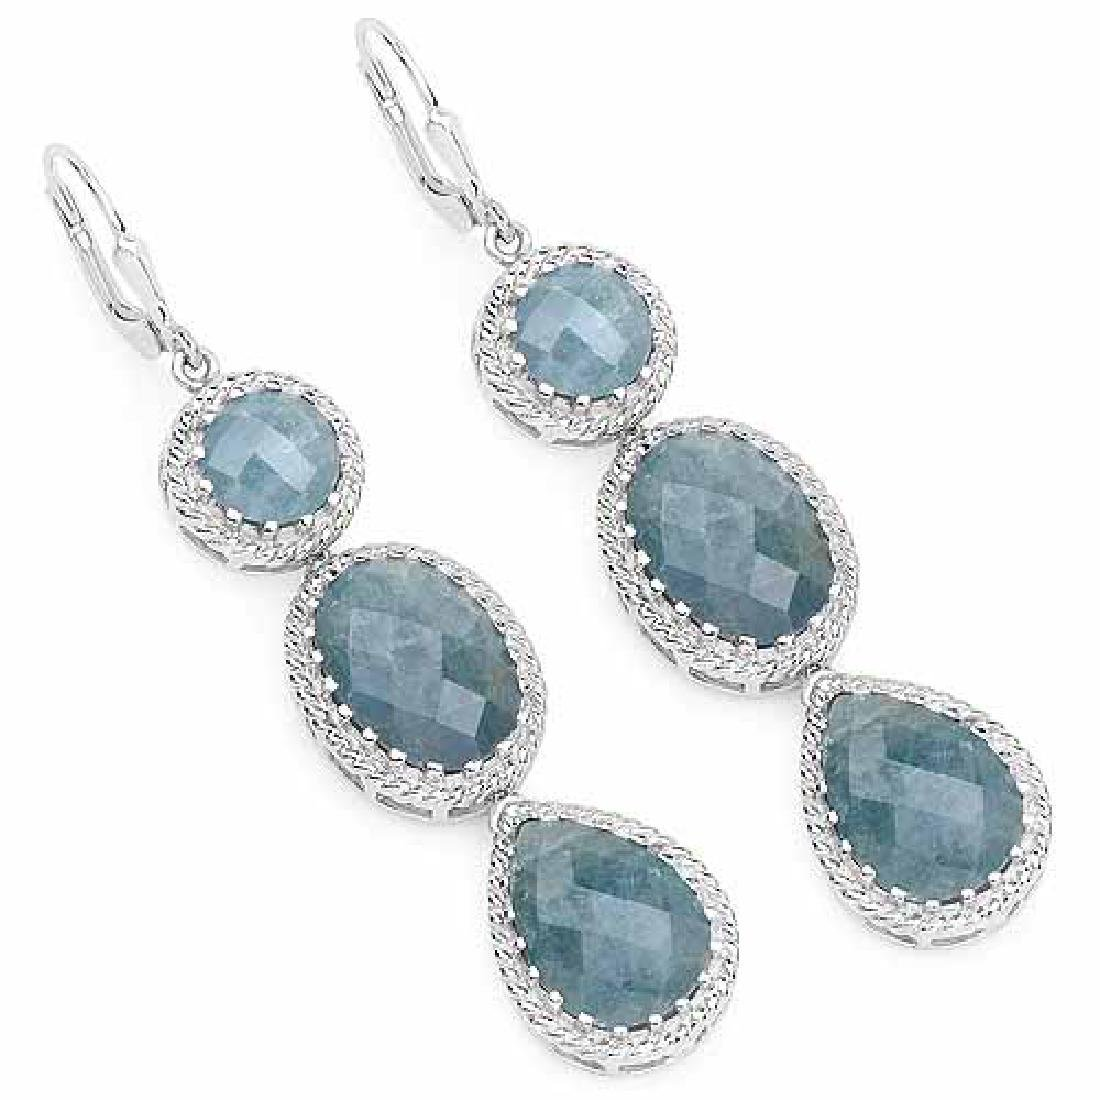 21.32 Carat Genuine Milky Aquamarine .925 Sterling Silv